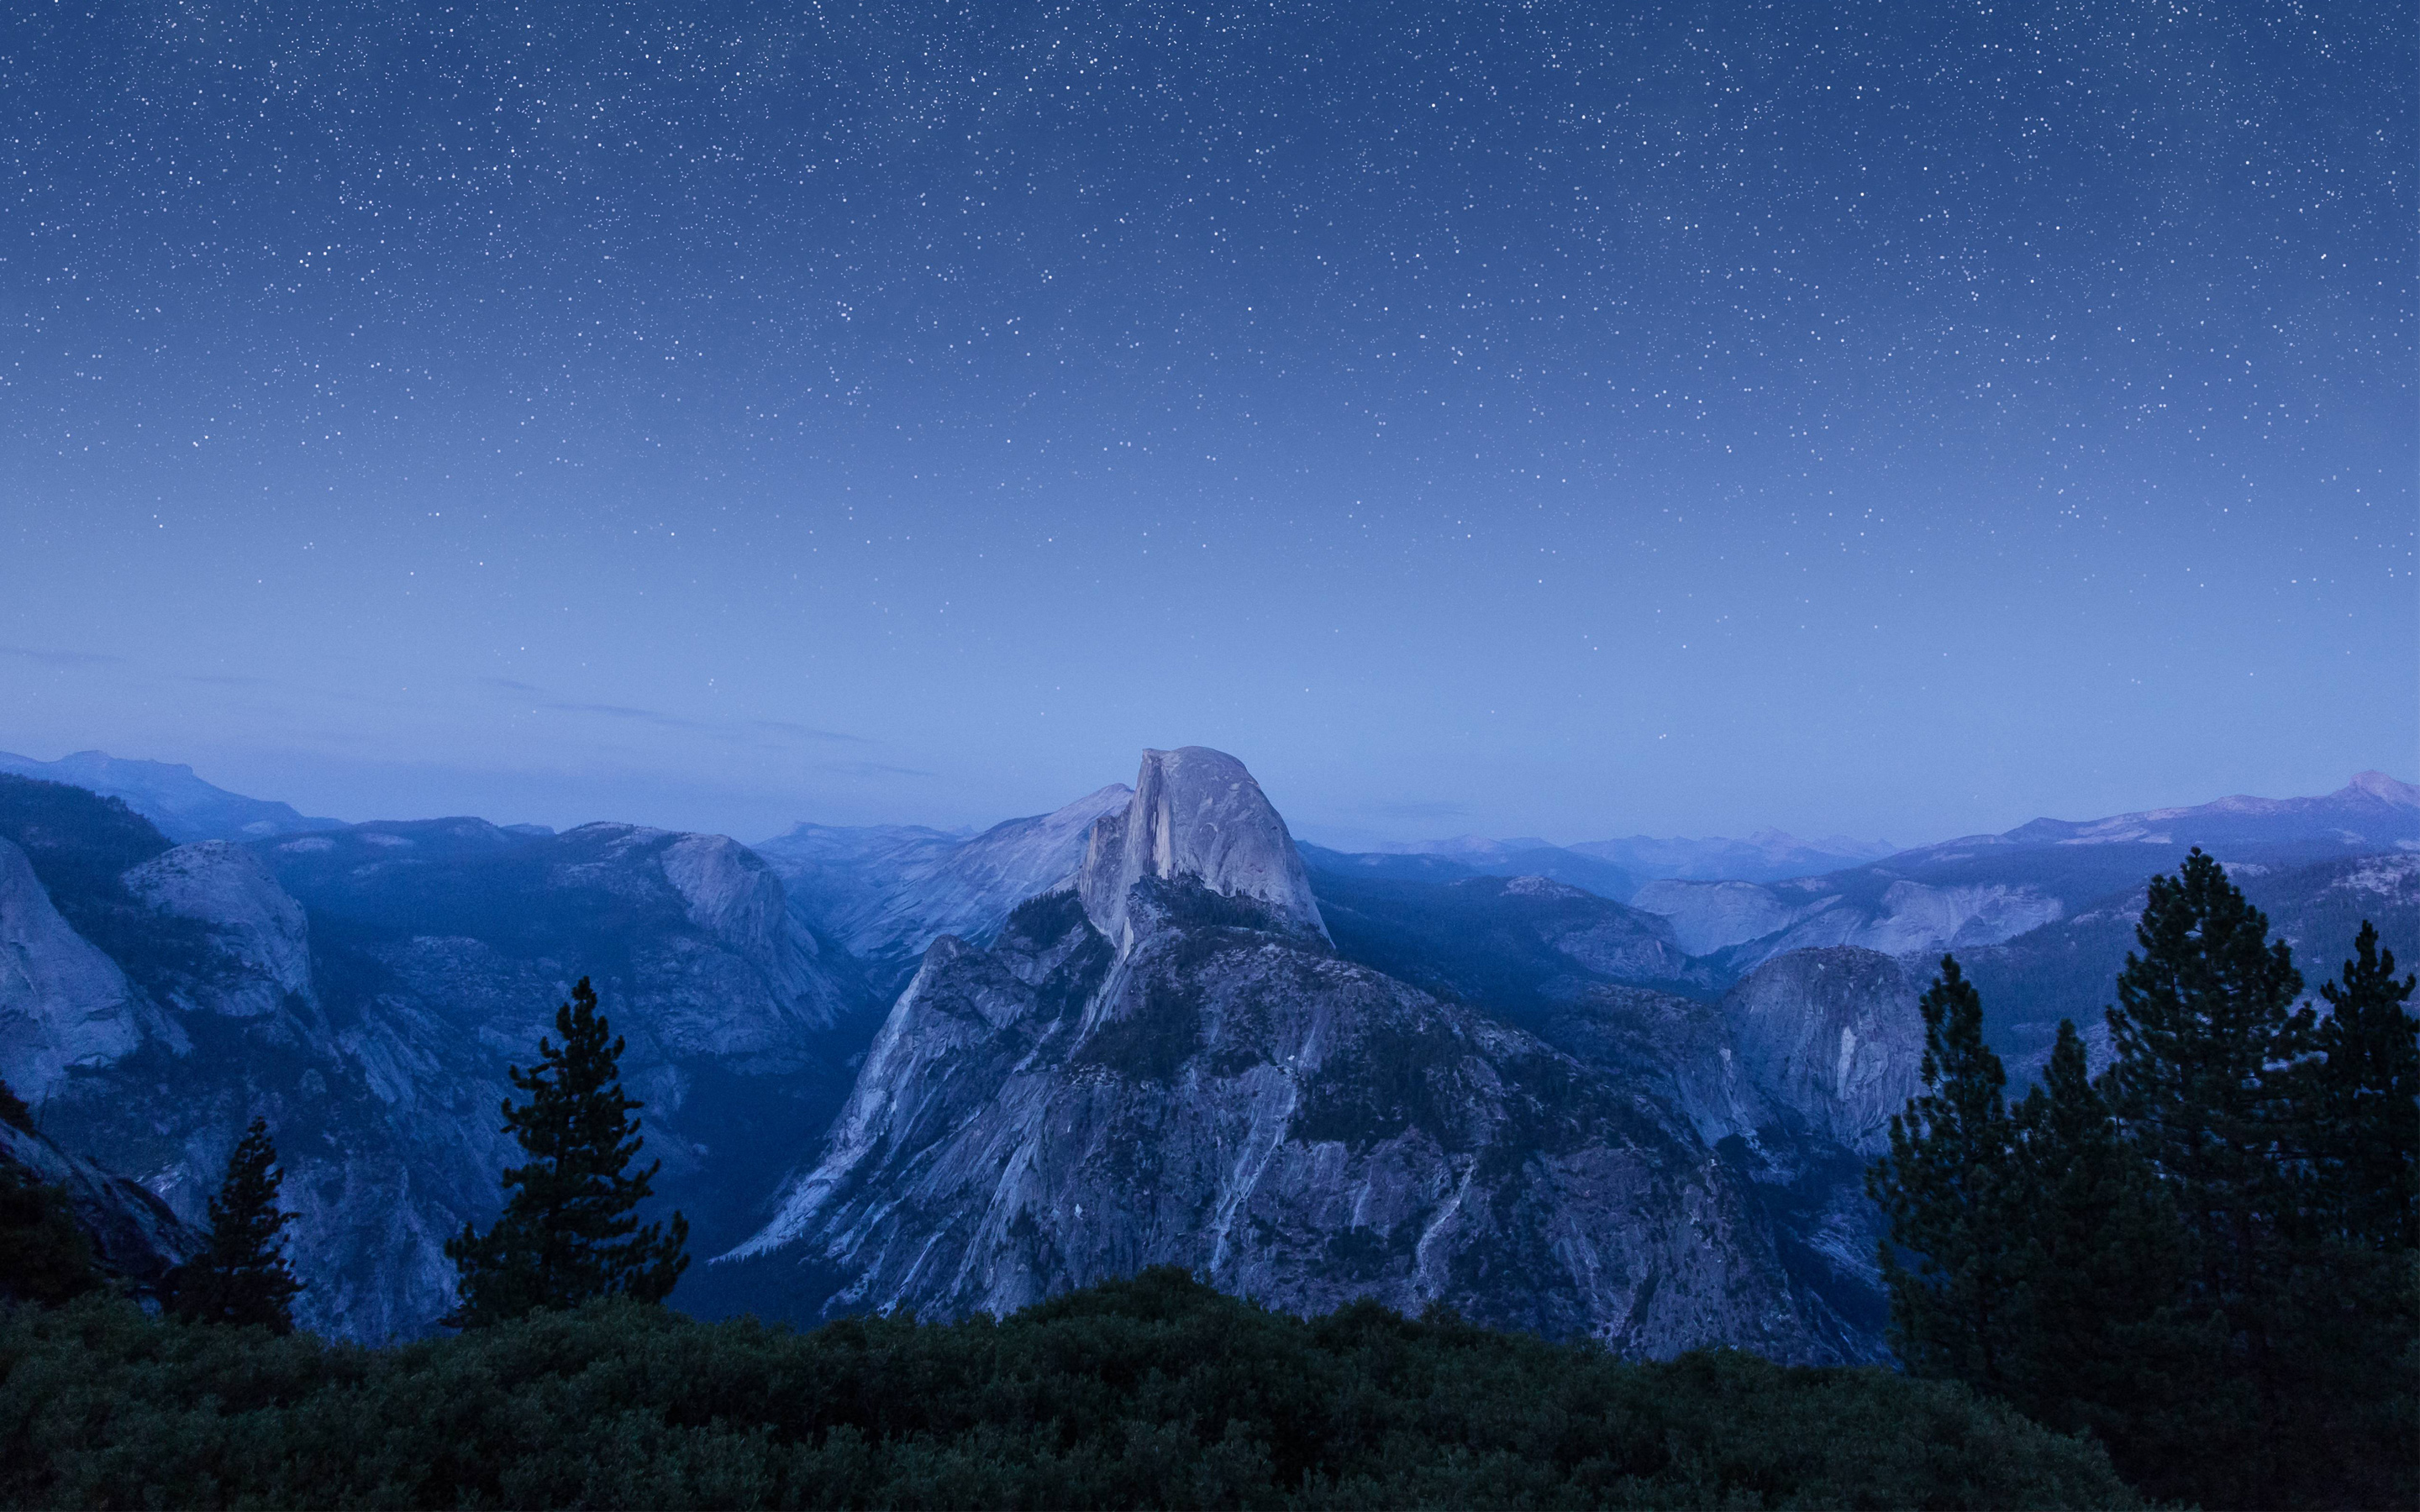 Apple OS X El Capitan Wallpapers HD Wallpapers 2880x1800